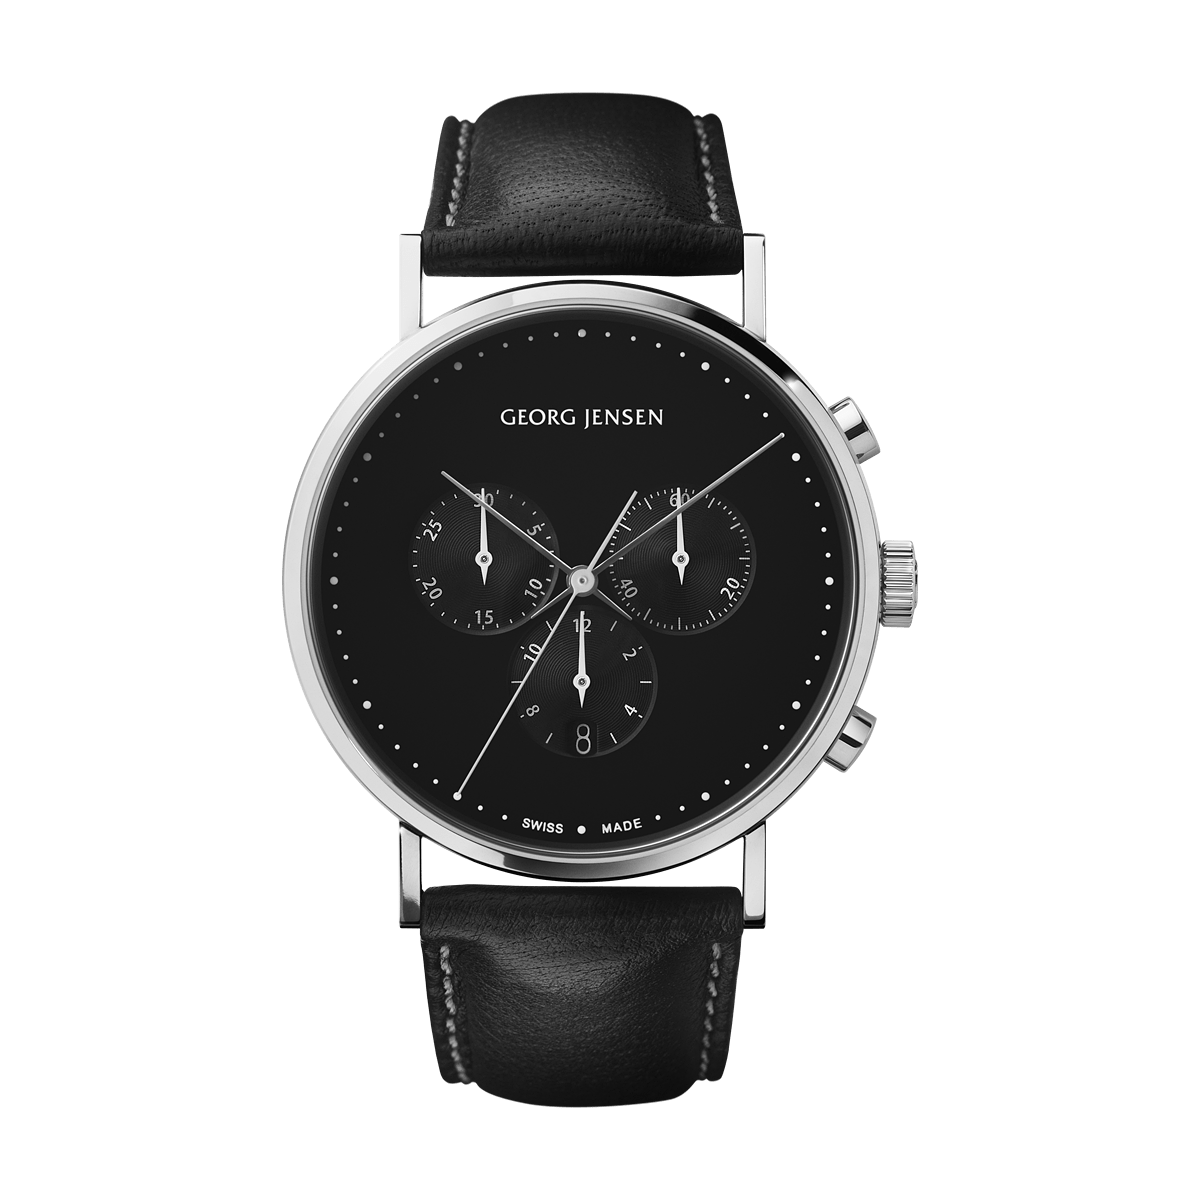 Jensen Uhren Koppel 41 Mm Chronograph Black Dial Black Leather Strap